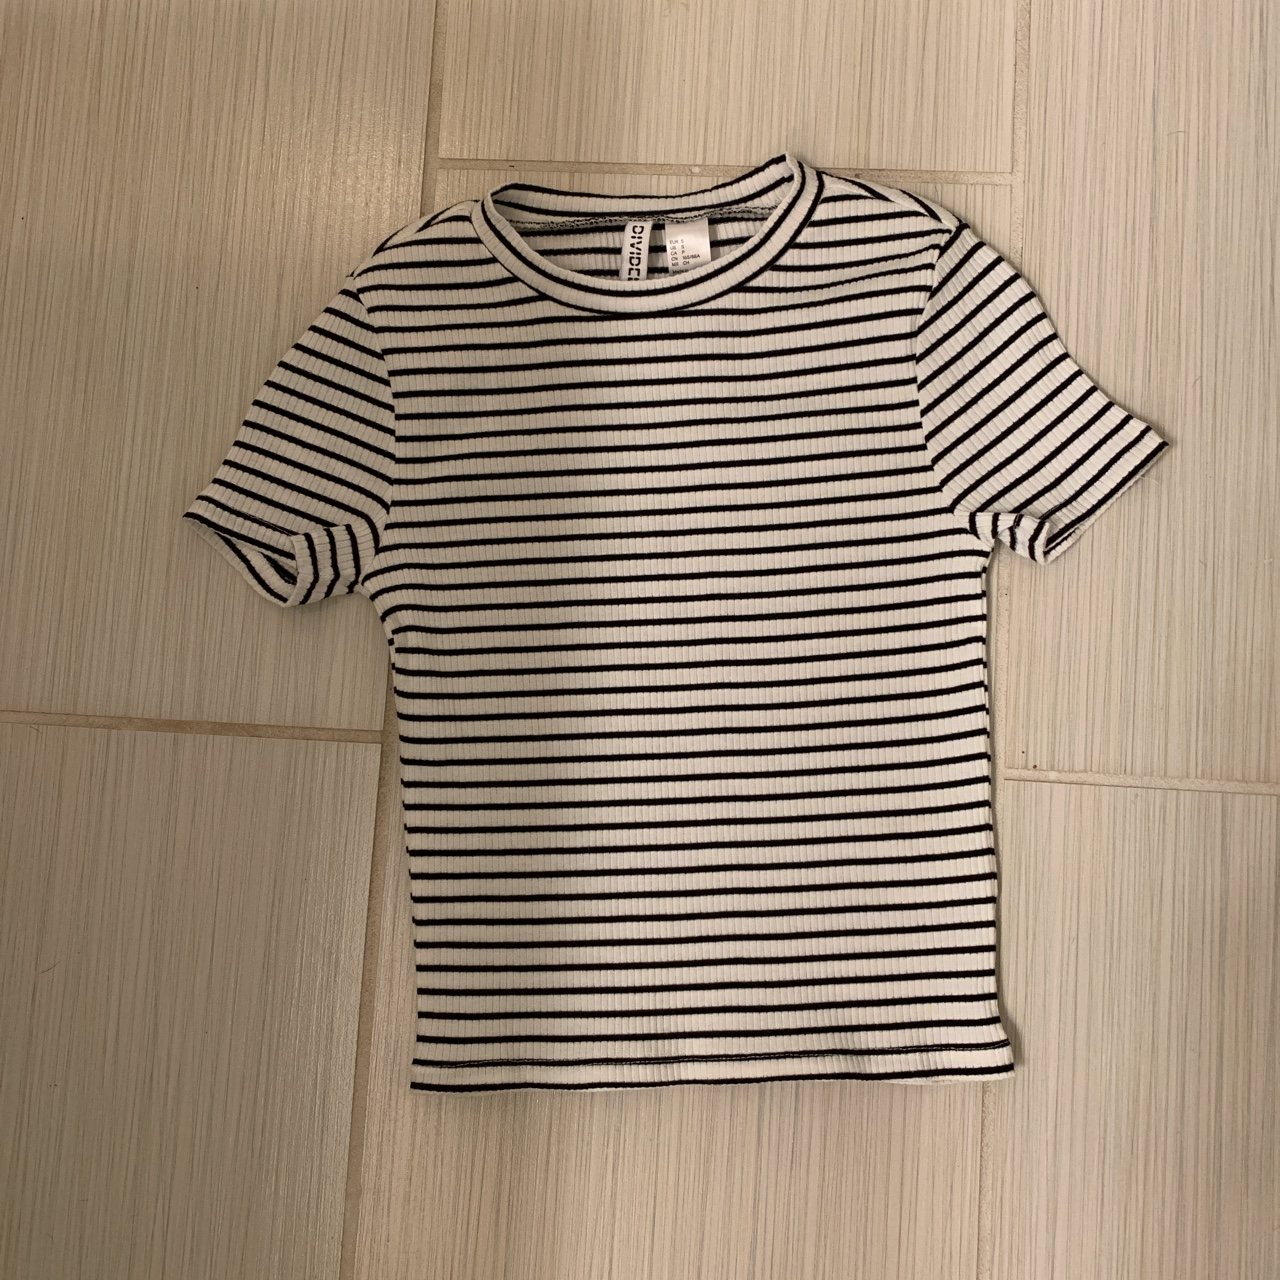 Product Image 1 - Cute striped shirt from divided